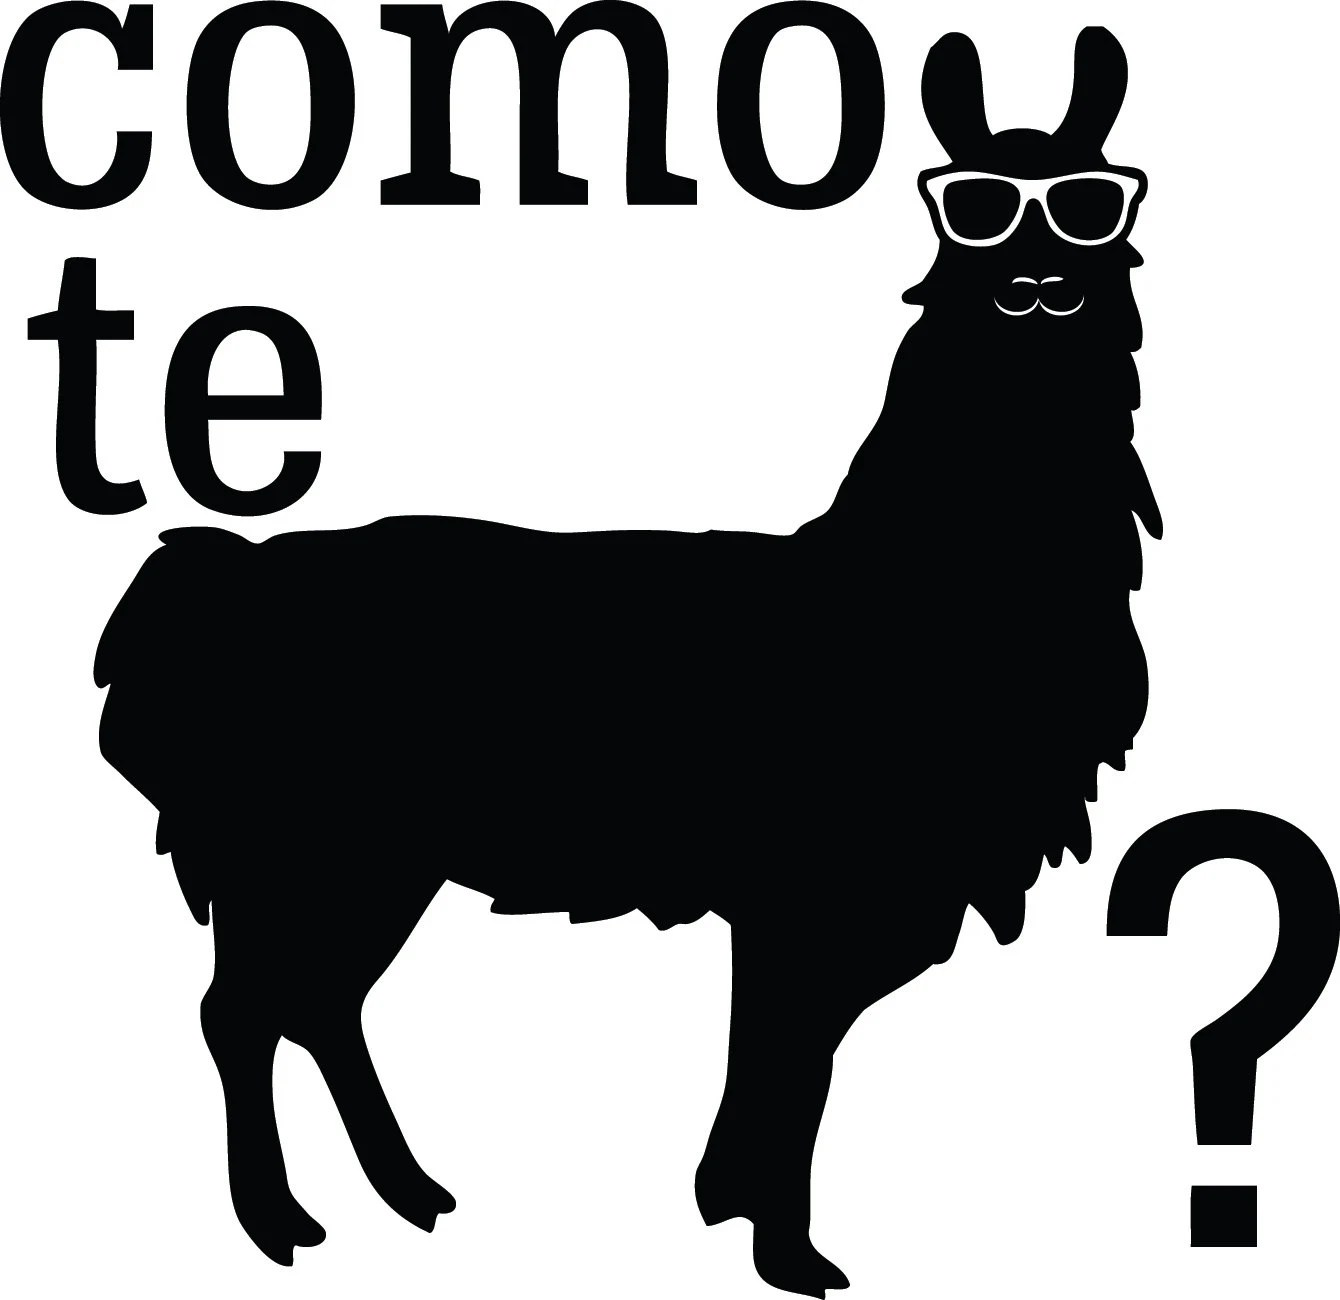 Spanish Funny Como Te Llama Decal Sticker By Stickedecals